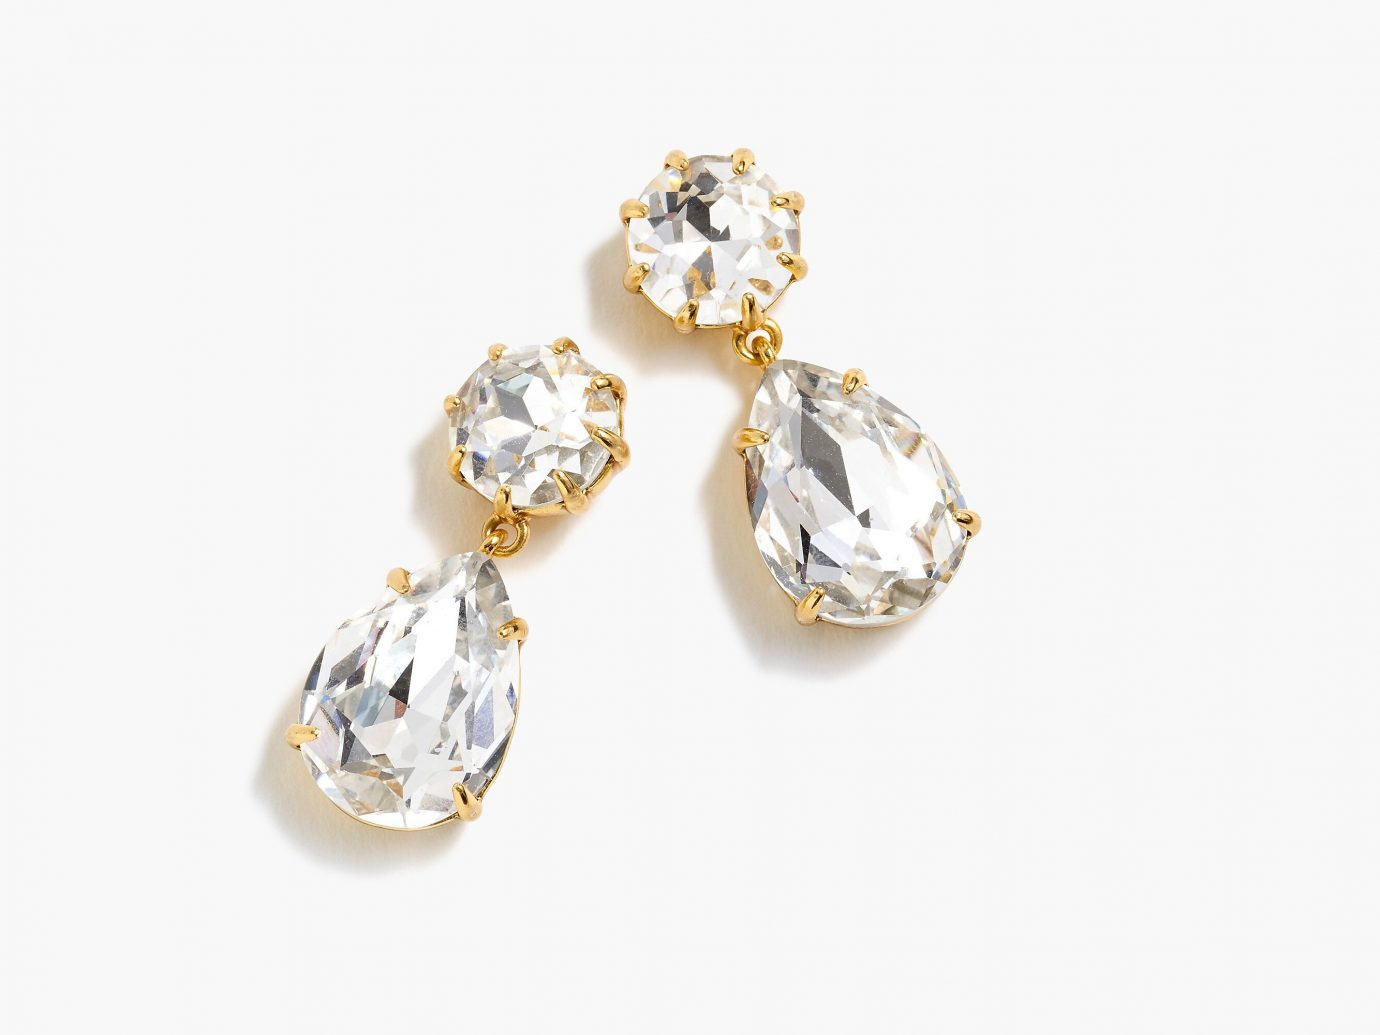 J.Crew Pear-shaped Stone Drop Earrings